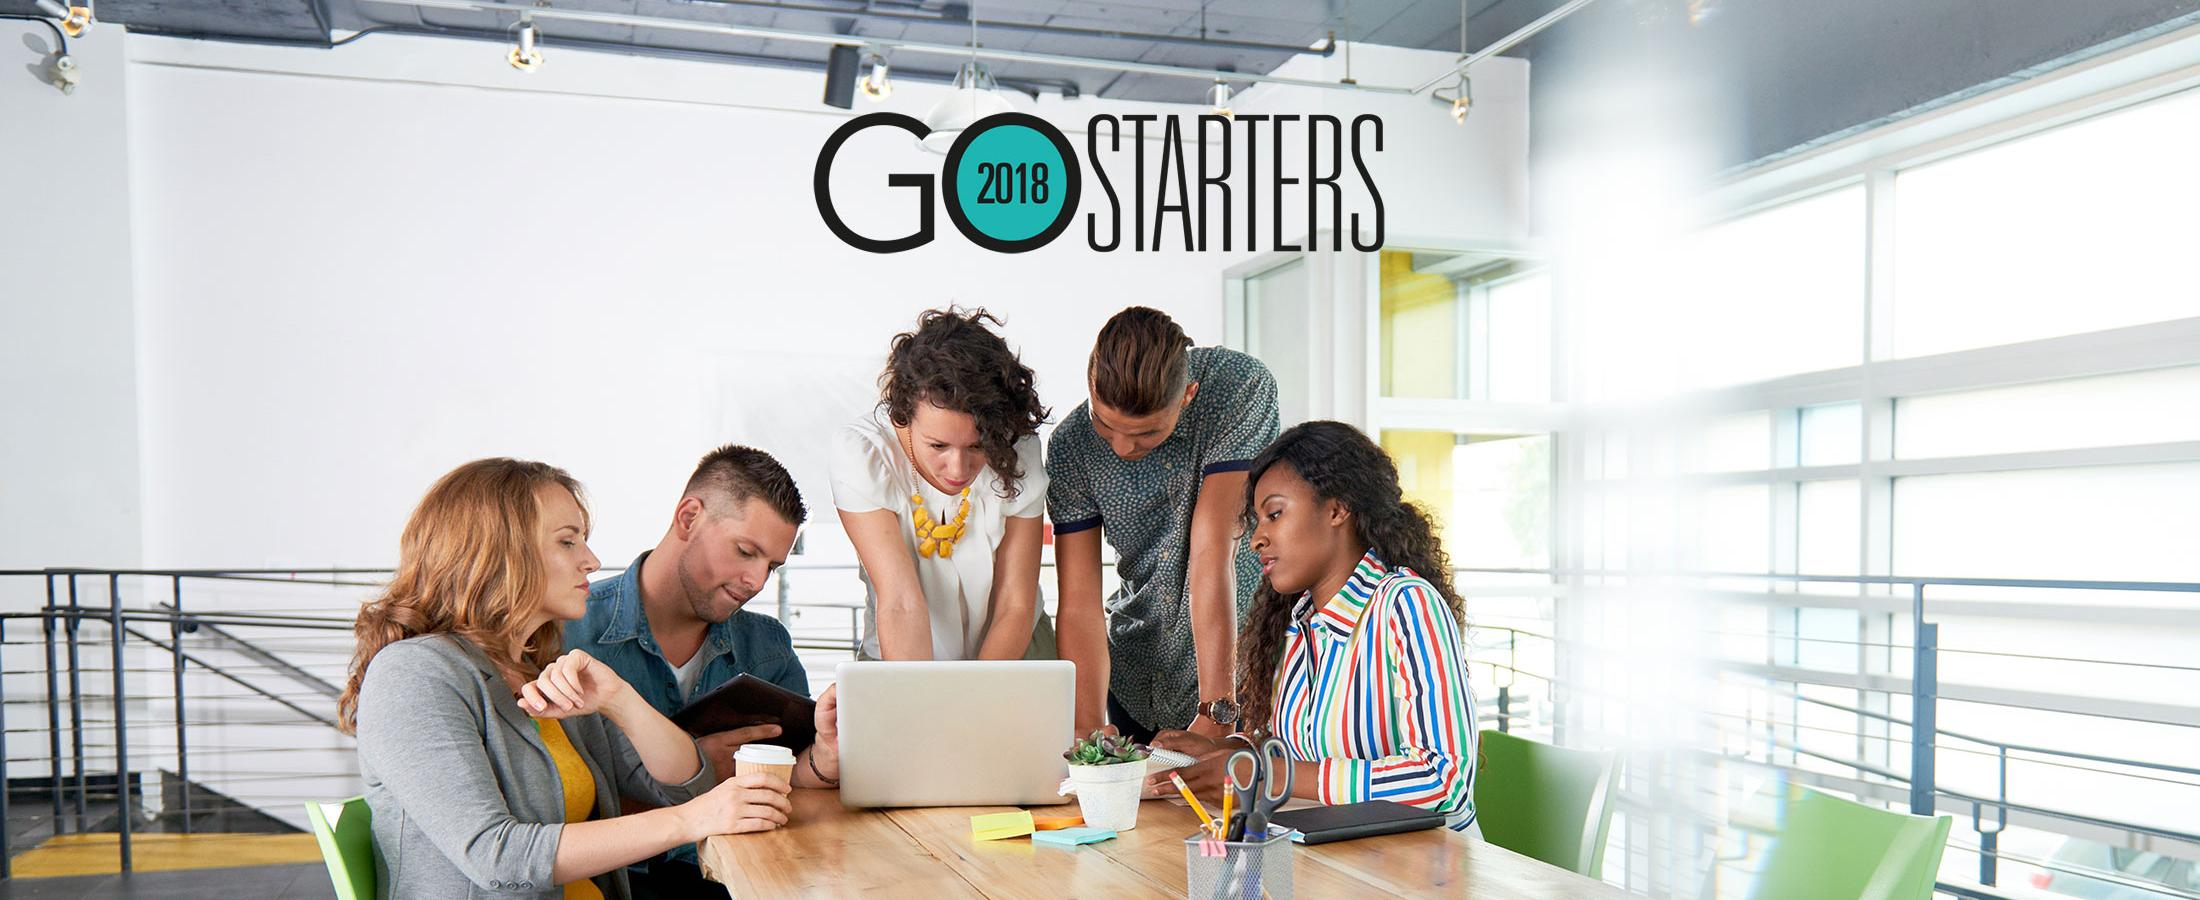 GO Starters introduceert CompanyMatch